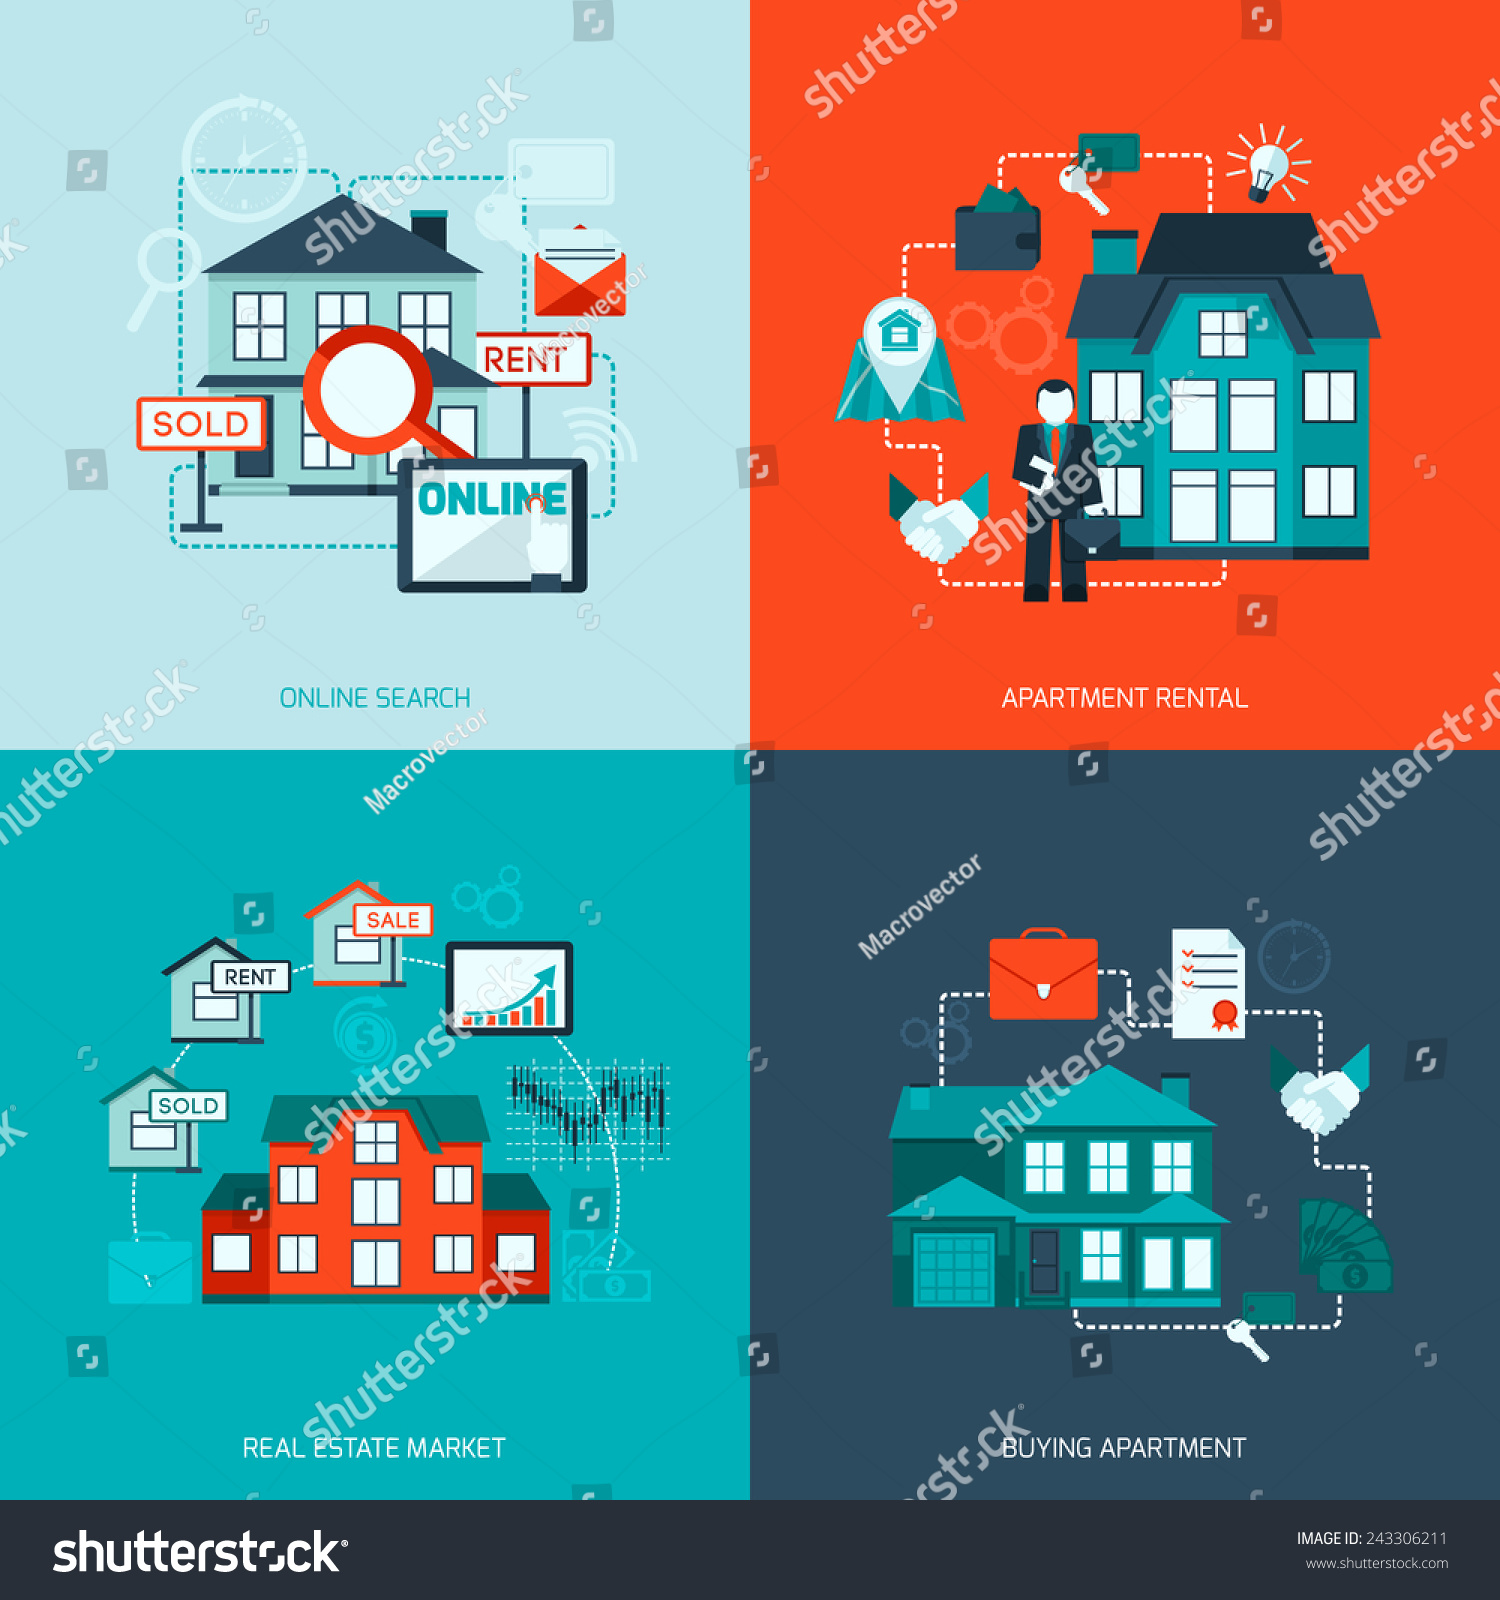 Find Rental: Real Estate Design Concept Set With Online Search